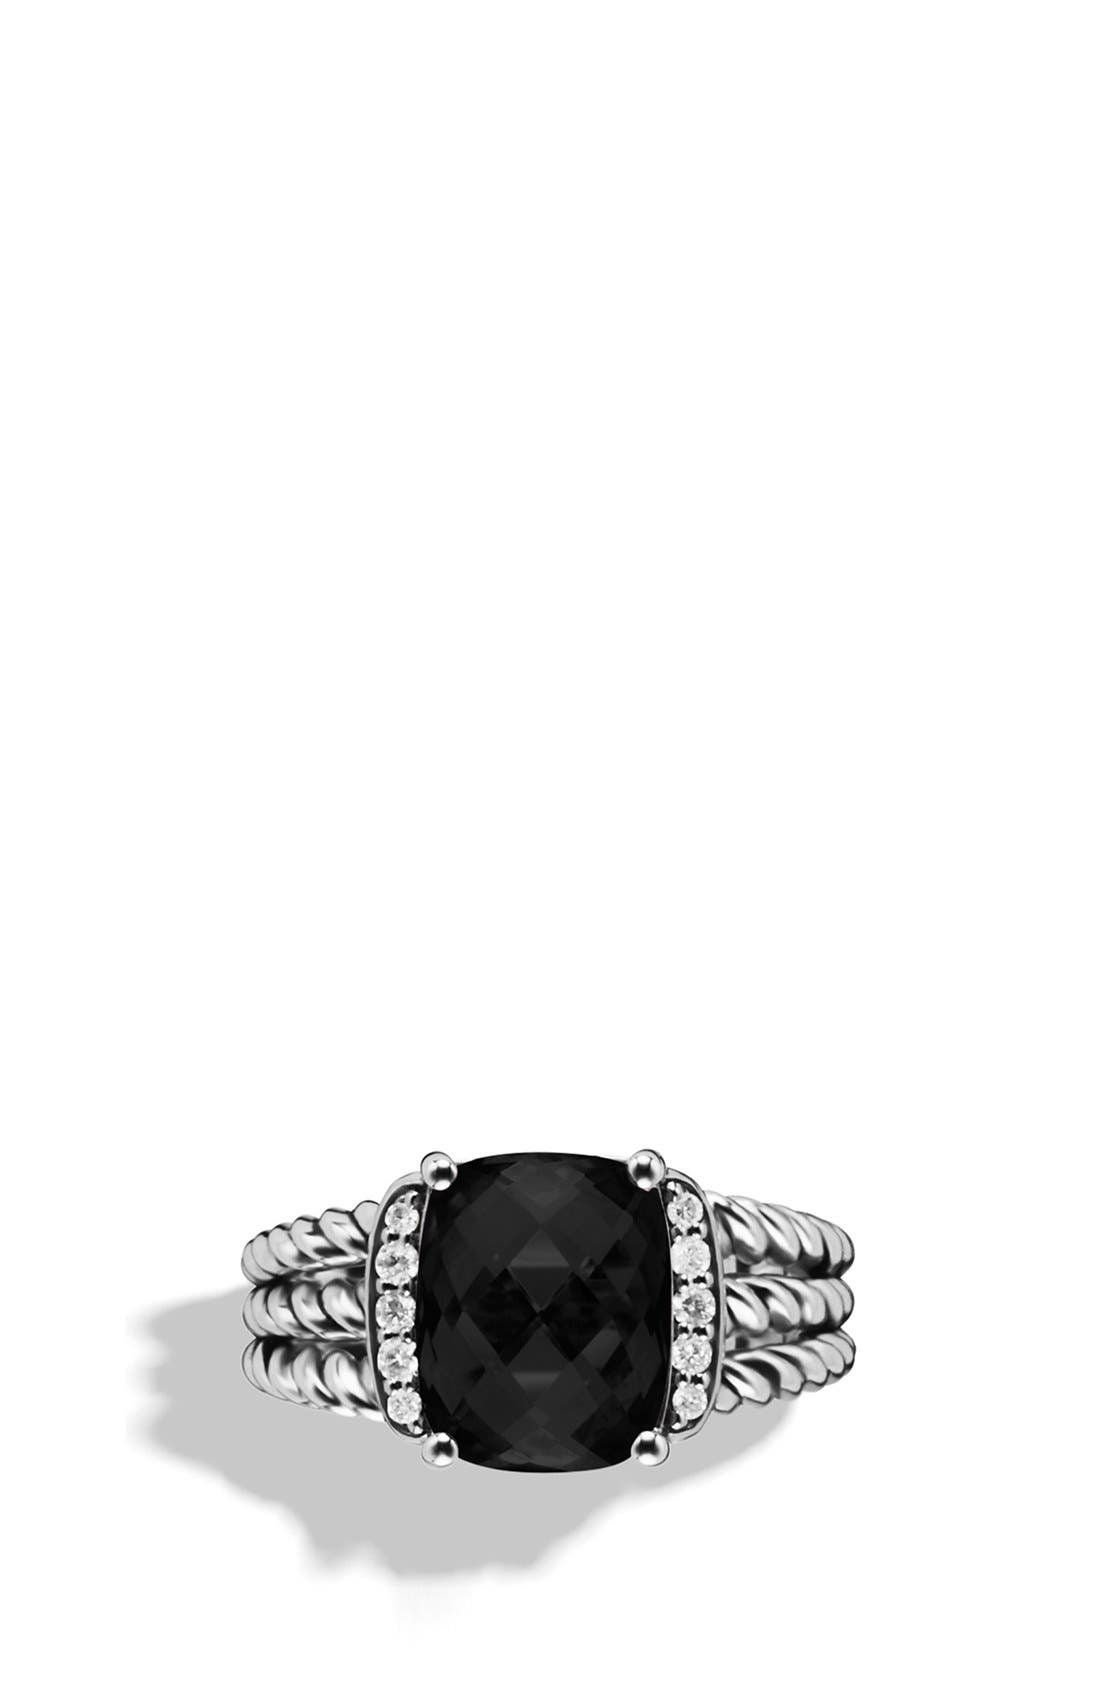 'Wheaton' Petite Ring with Semiprecious Stone & Diamonds,                             Alternate thumbnail 3, color,                             BLACK ONYX